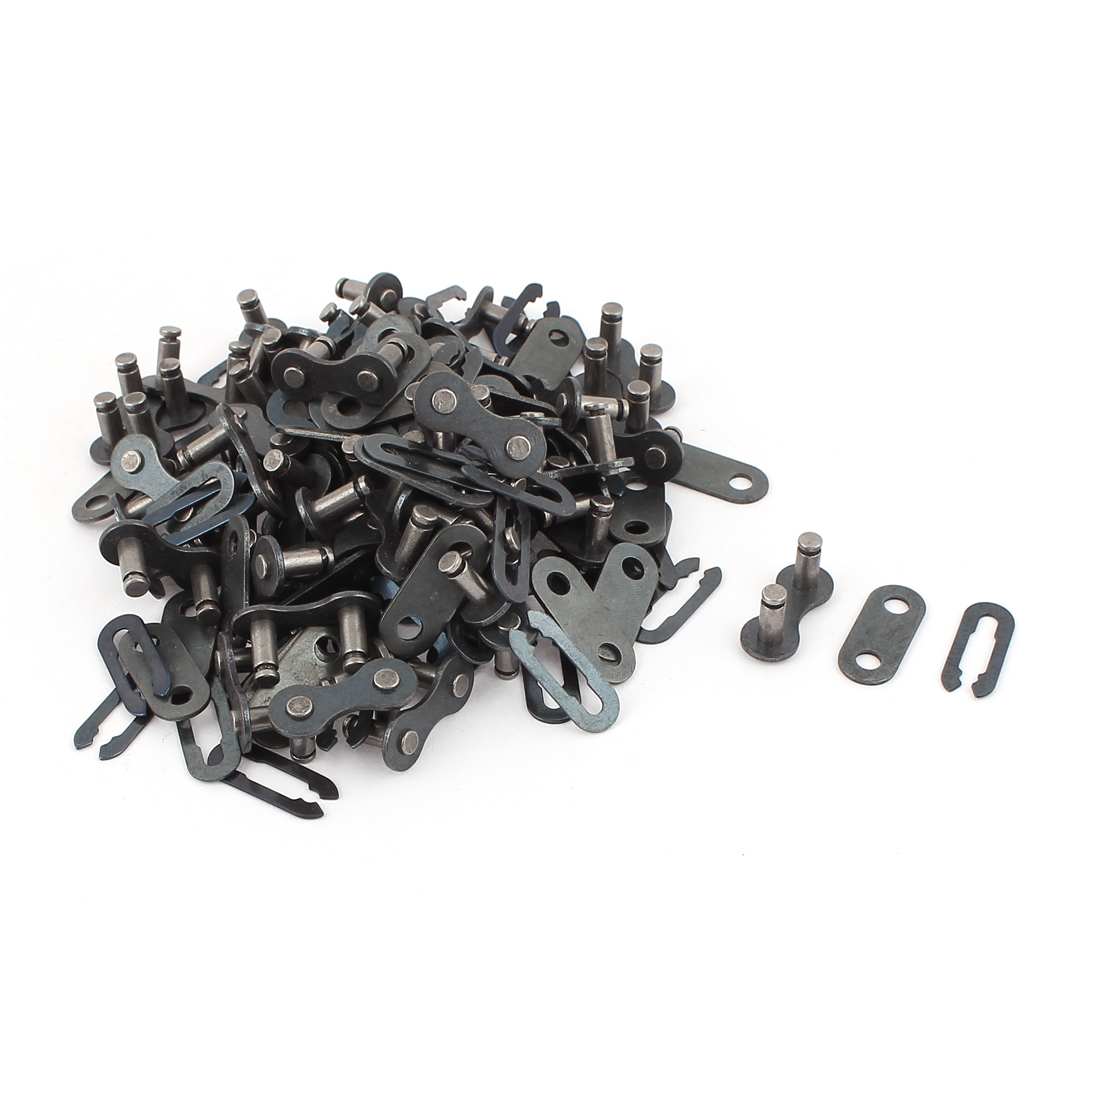 Bicycle Bike Gray Metal Chain Clip Master Link Connectors Repair Parts 50 Sets